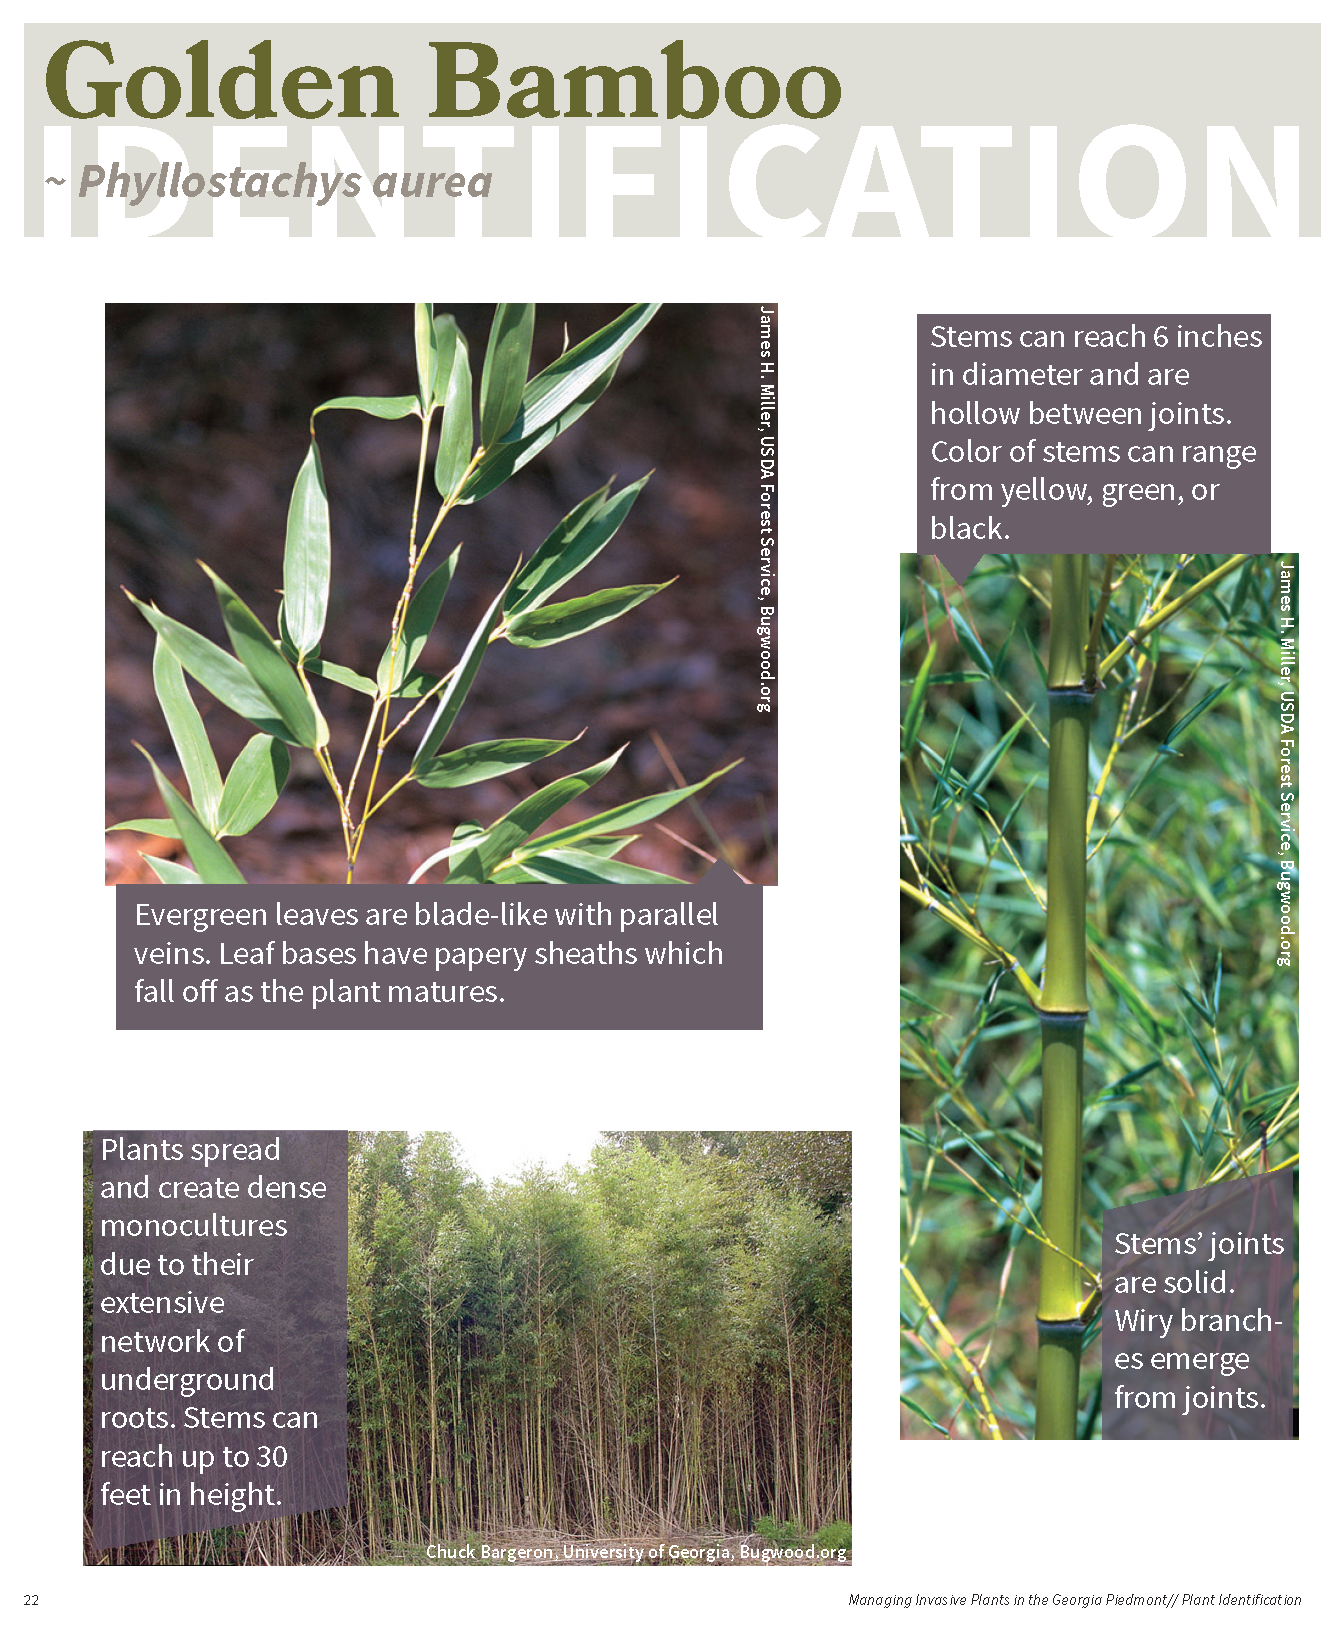 Managing Invasive Plants in the GA Piedmont for web_Page_21